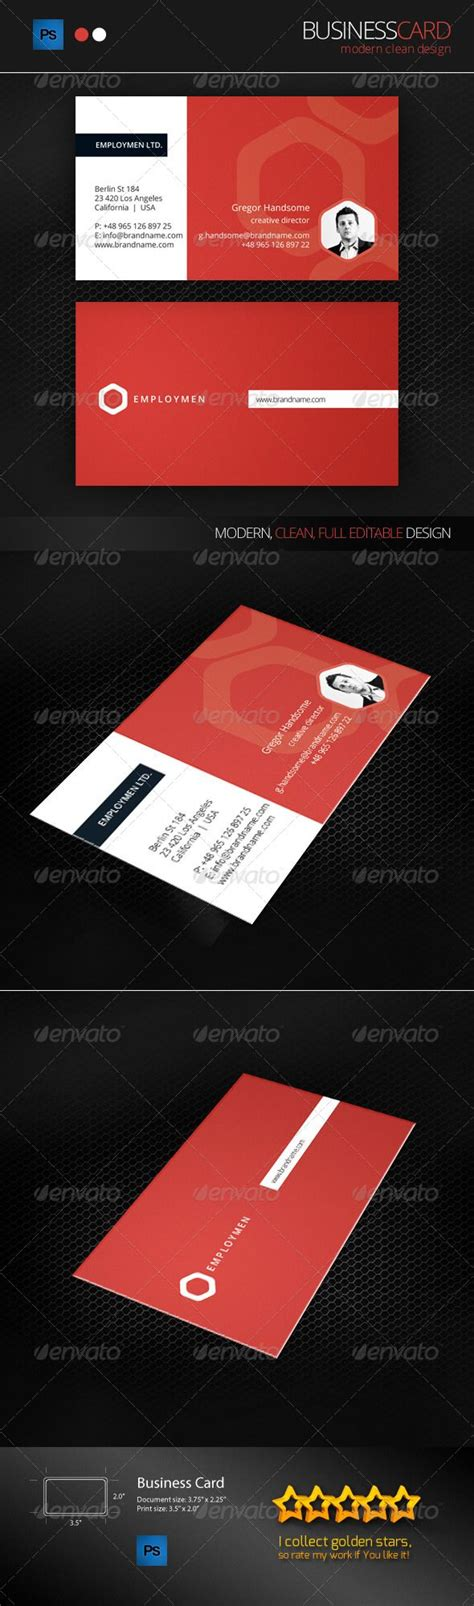 Sided Business Card Template Photoshop by 17 Best Images About Print Templates On Fonts